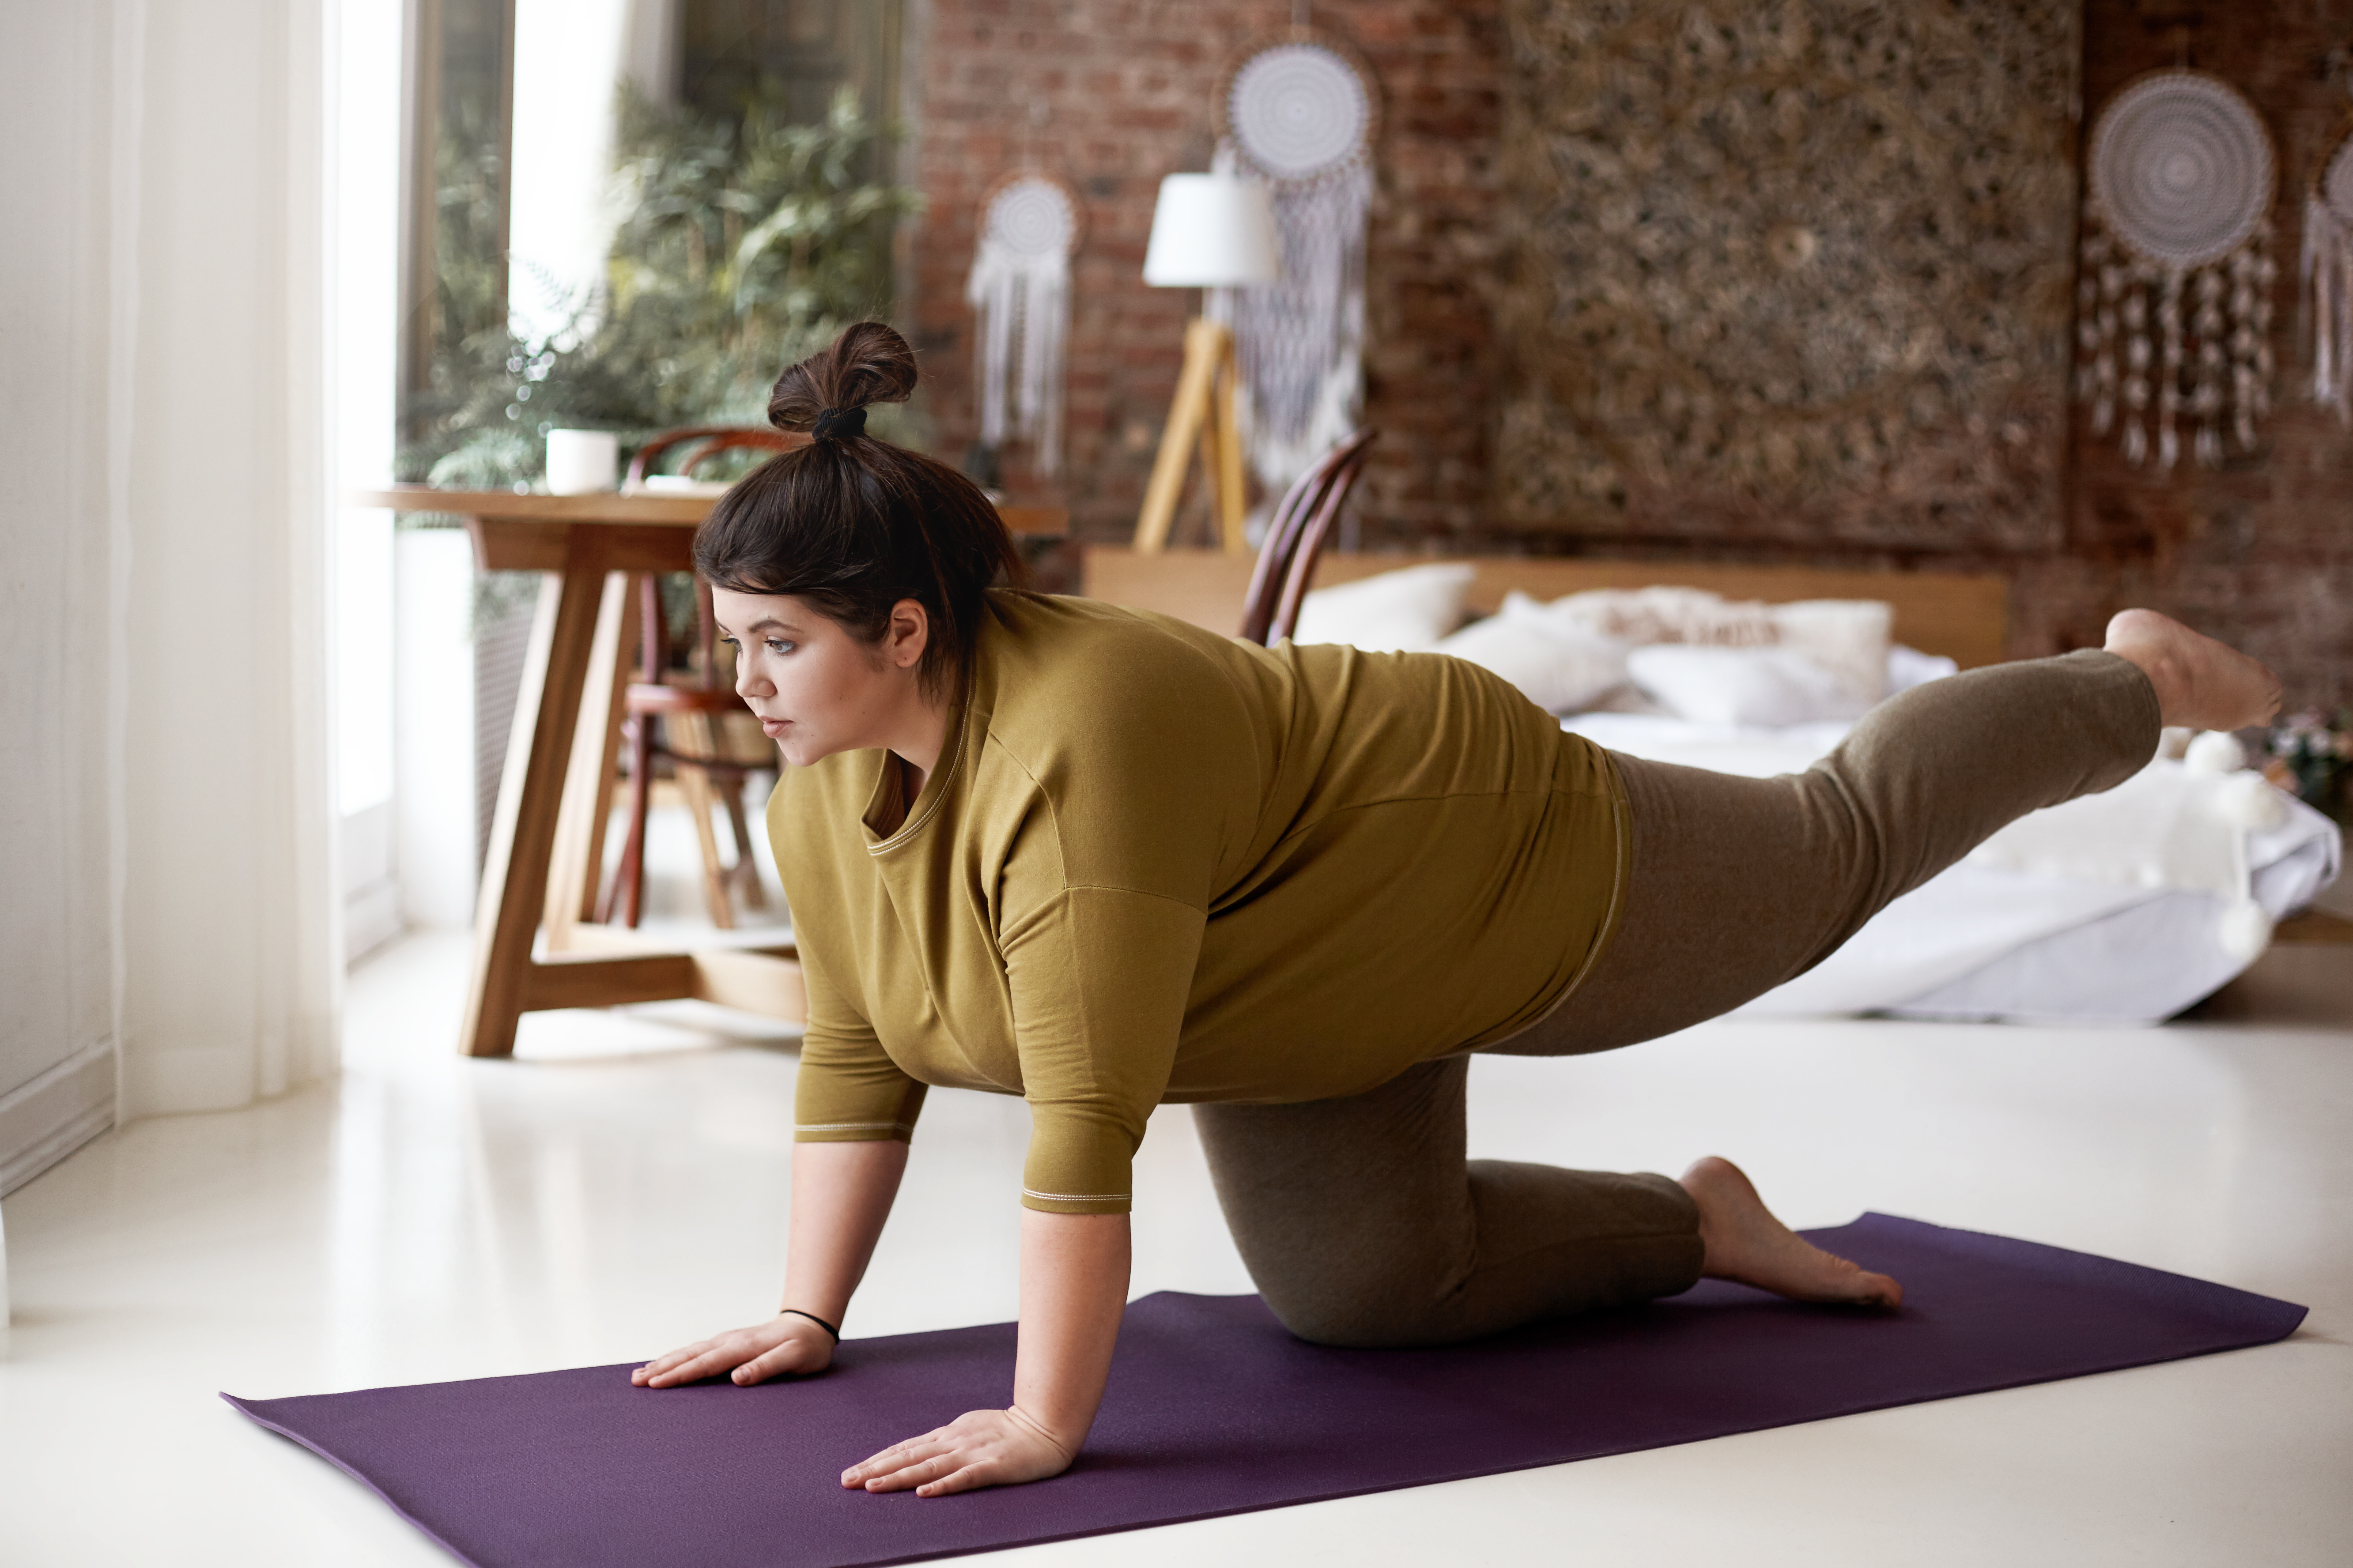 Larger woman practicing yoga, weight issues and yoga, diverse yoga classes